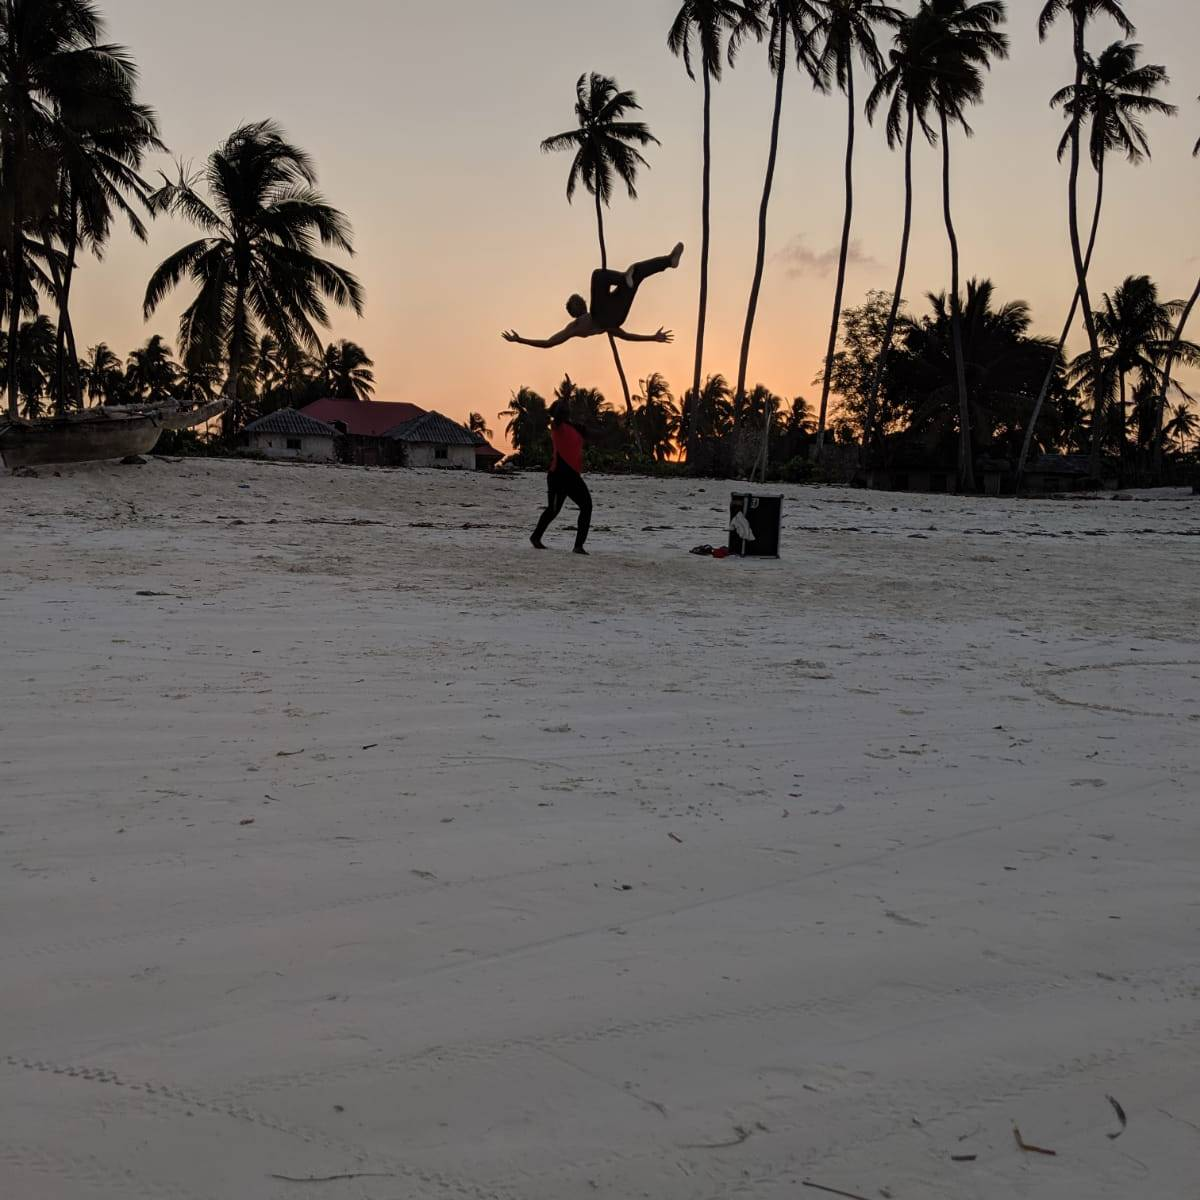 People training an acrobatic routine at sunset on Jambiani Beach, Zanzibar